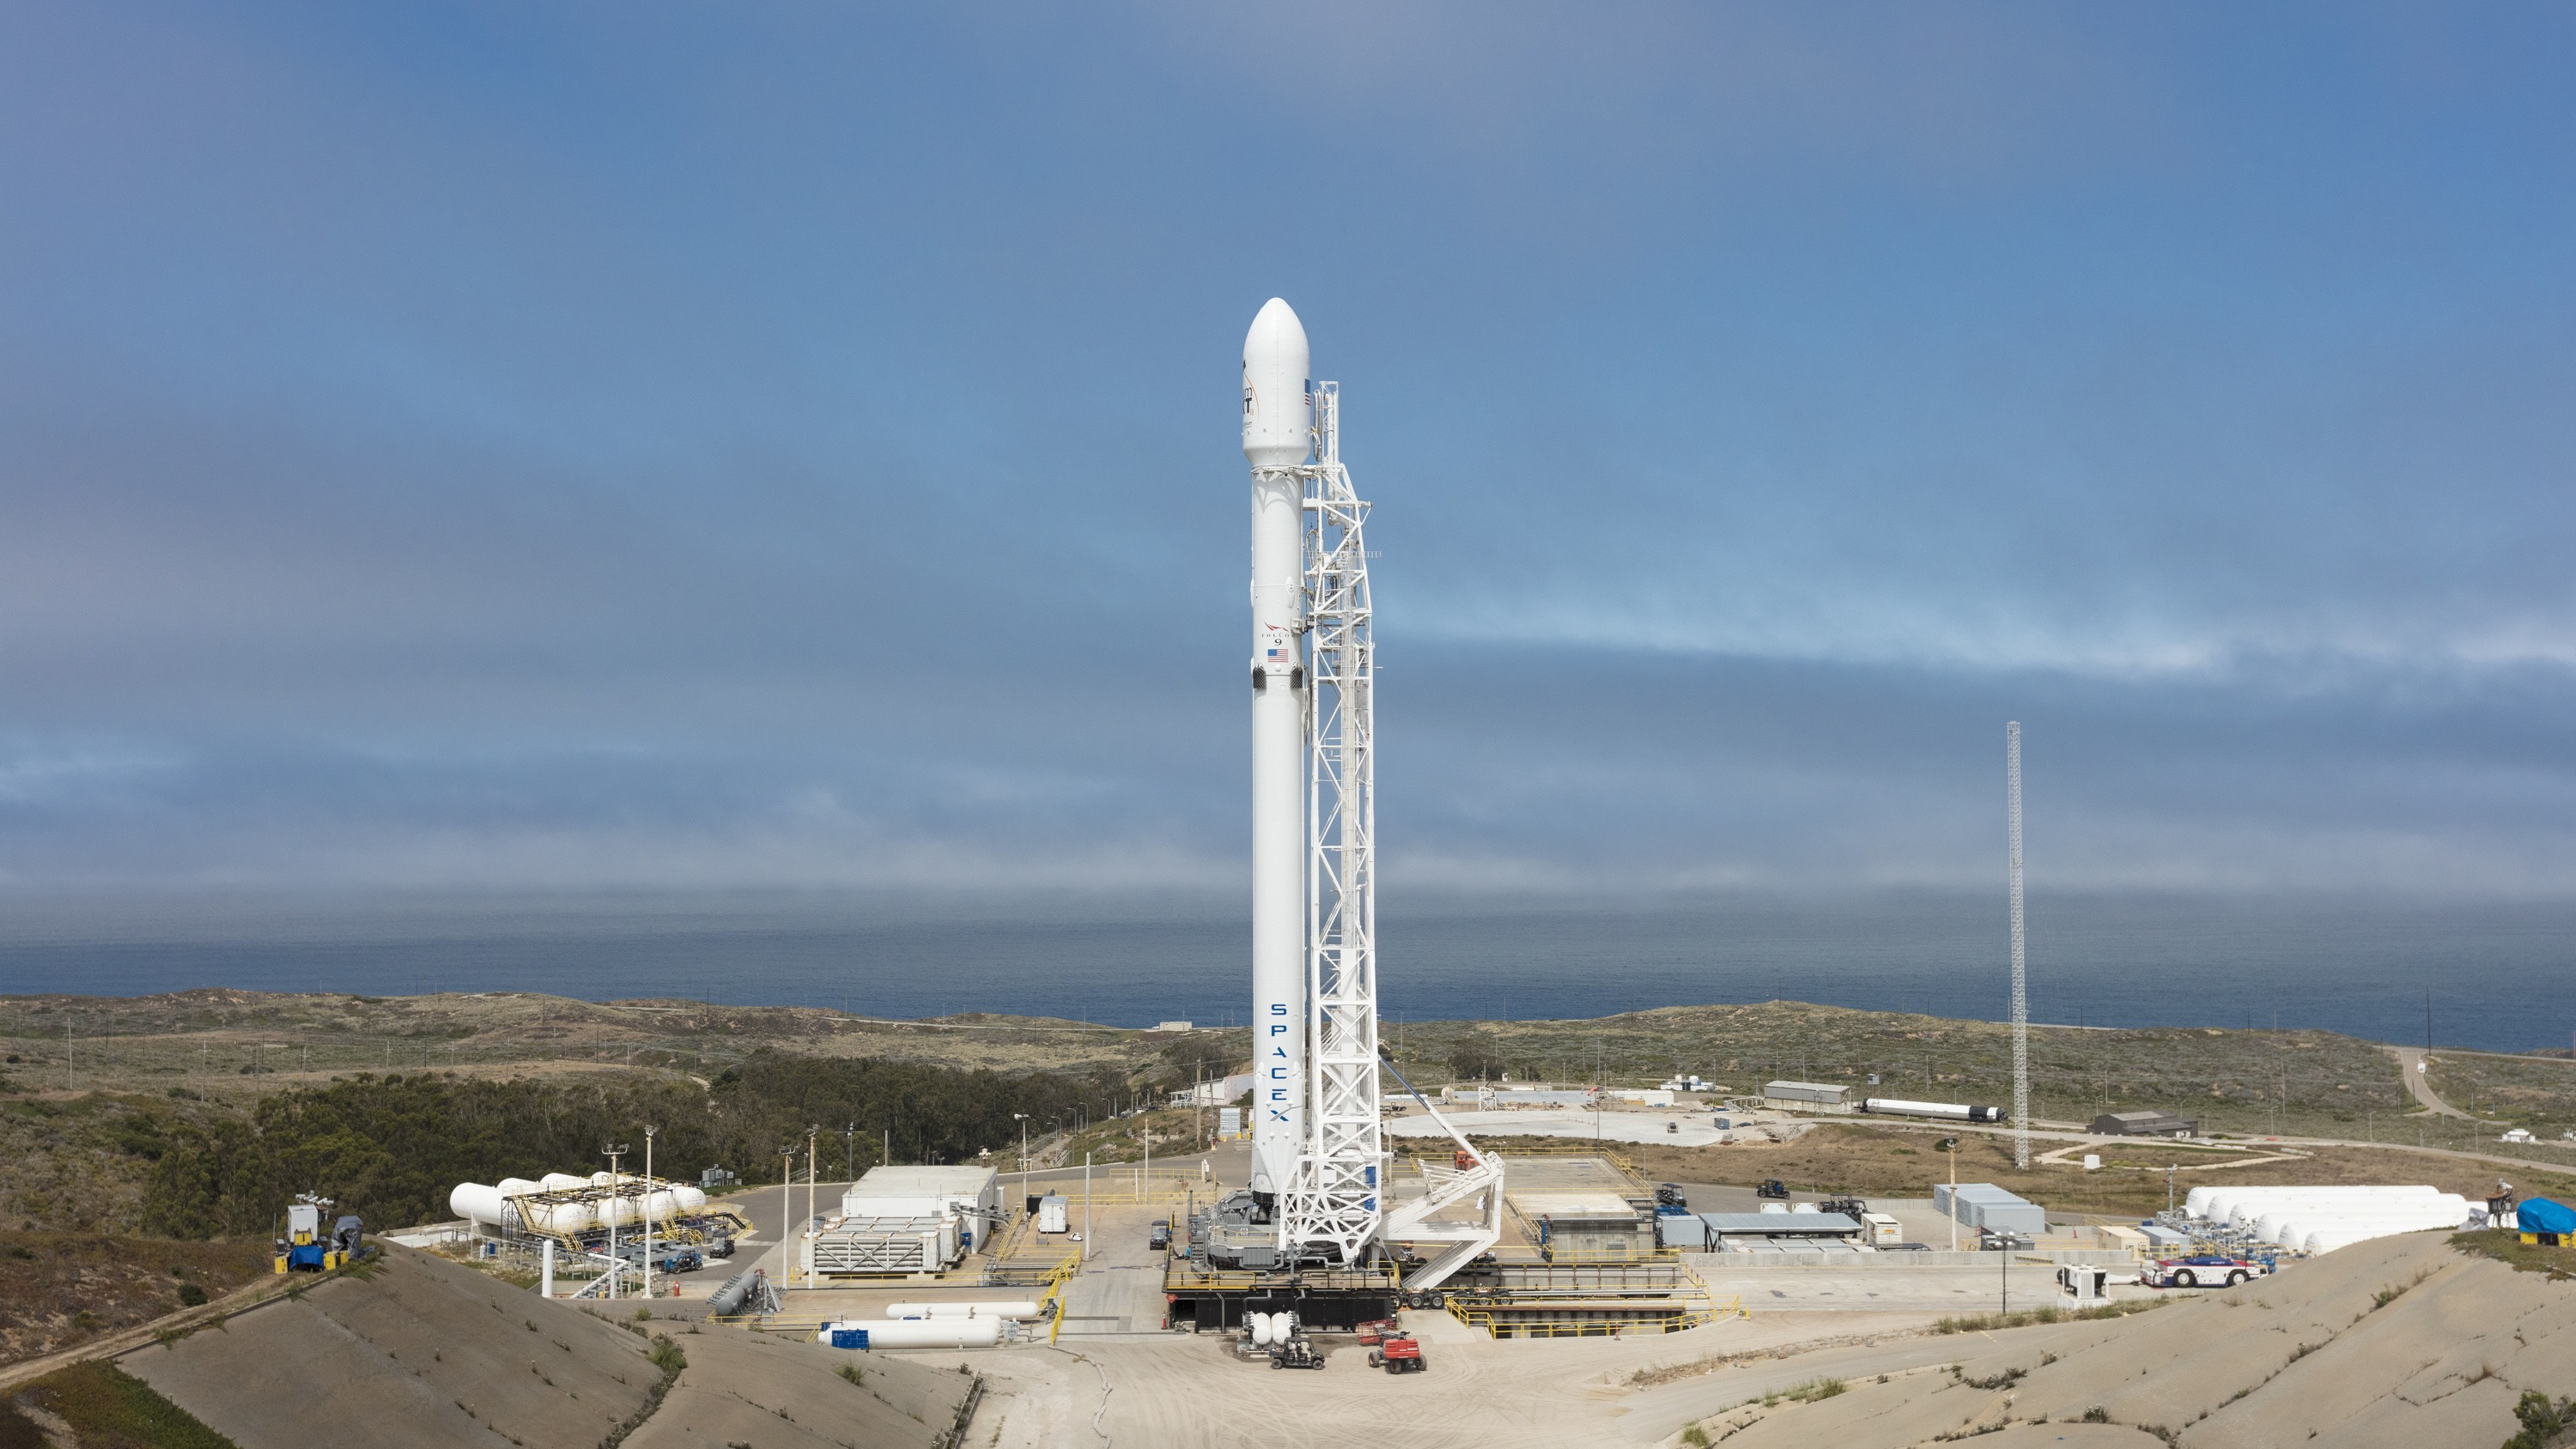 Iridium-2 and Falcon 9